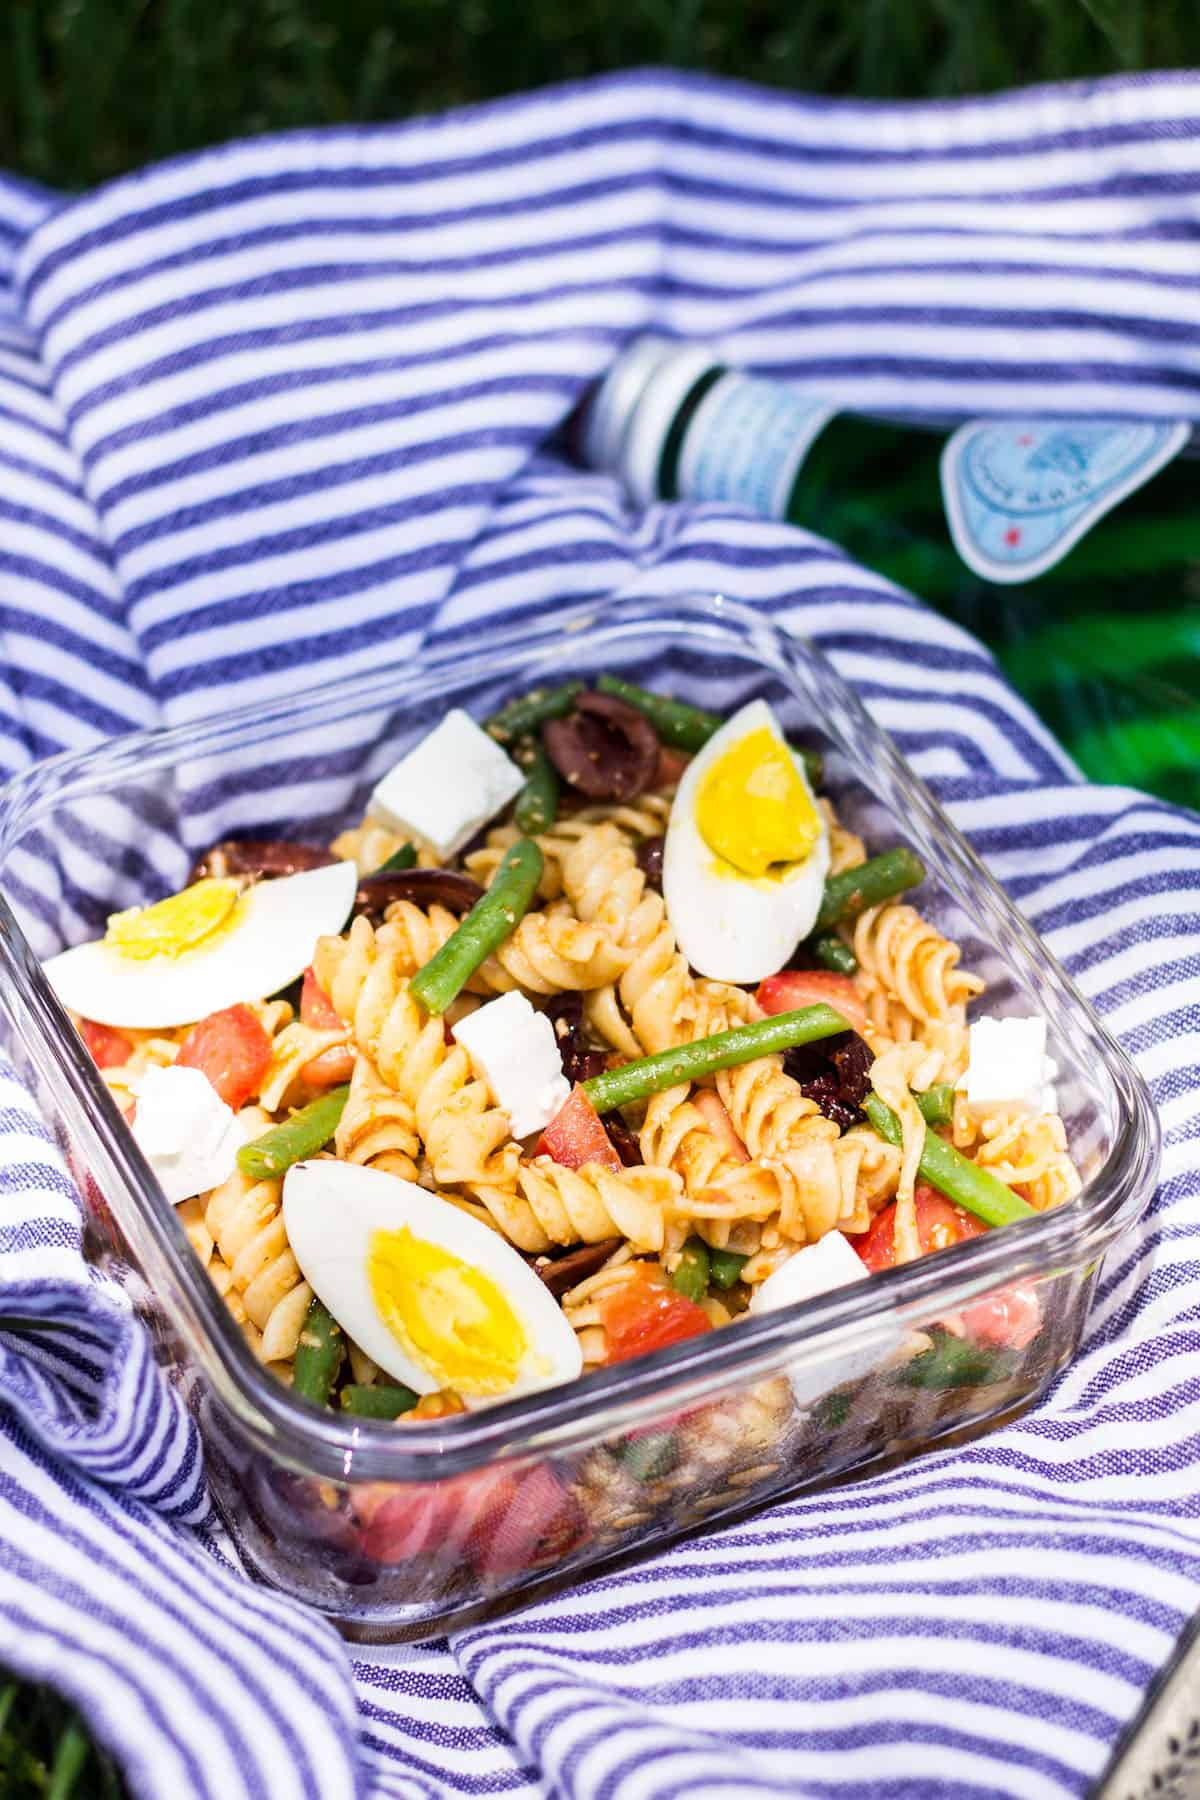 Nicoise Pasta Salad: an easy twist on a classic French salad, this tasty pasta salad is perfect for summer picnics. Recipe via MonPetitFour.com